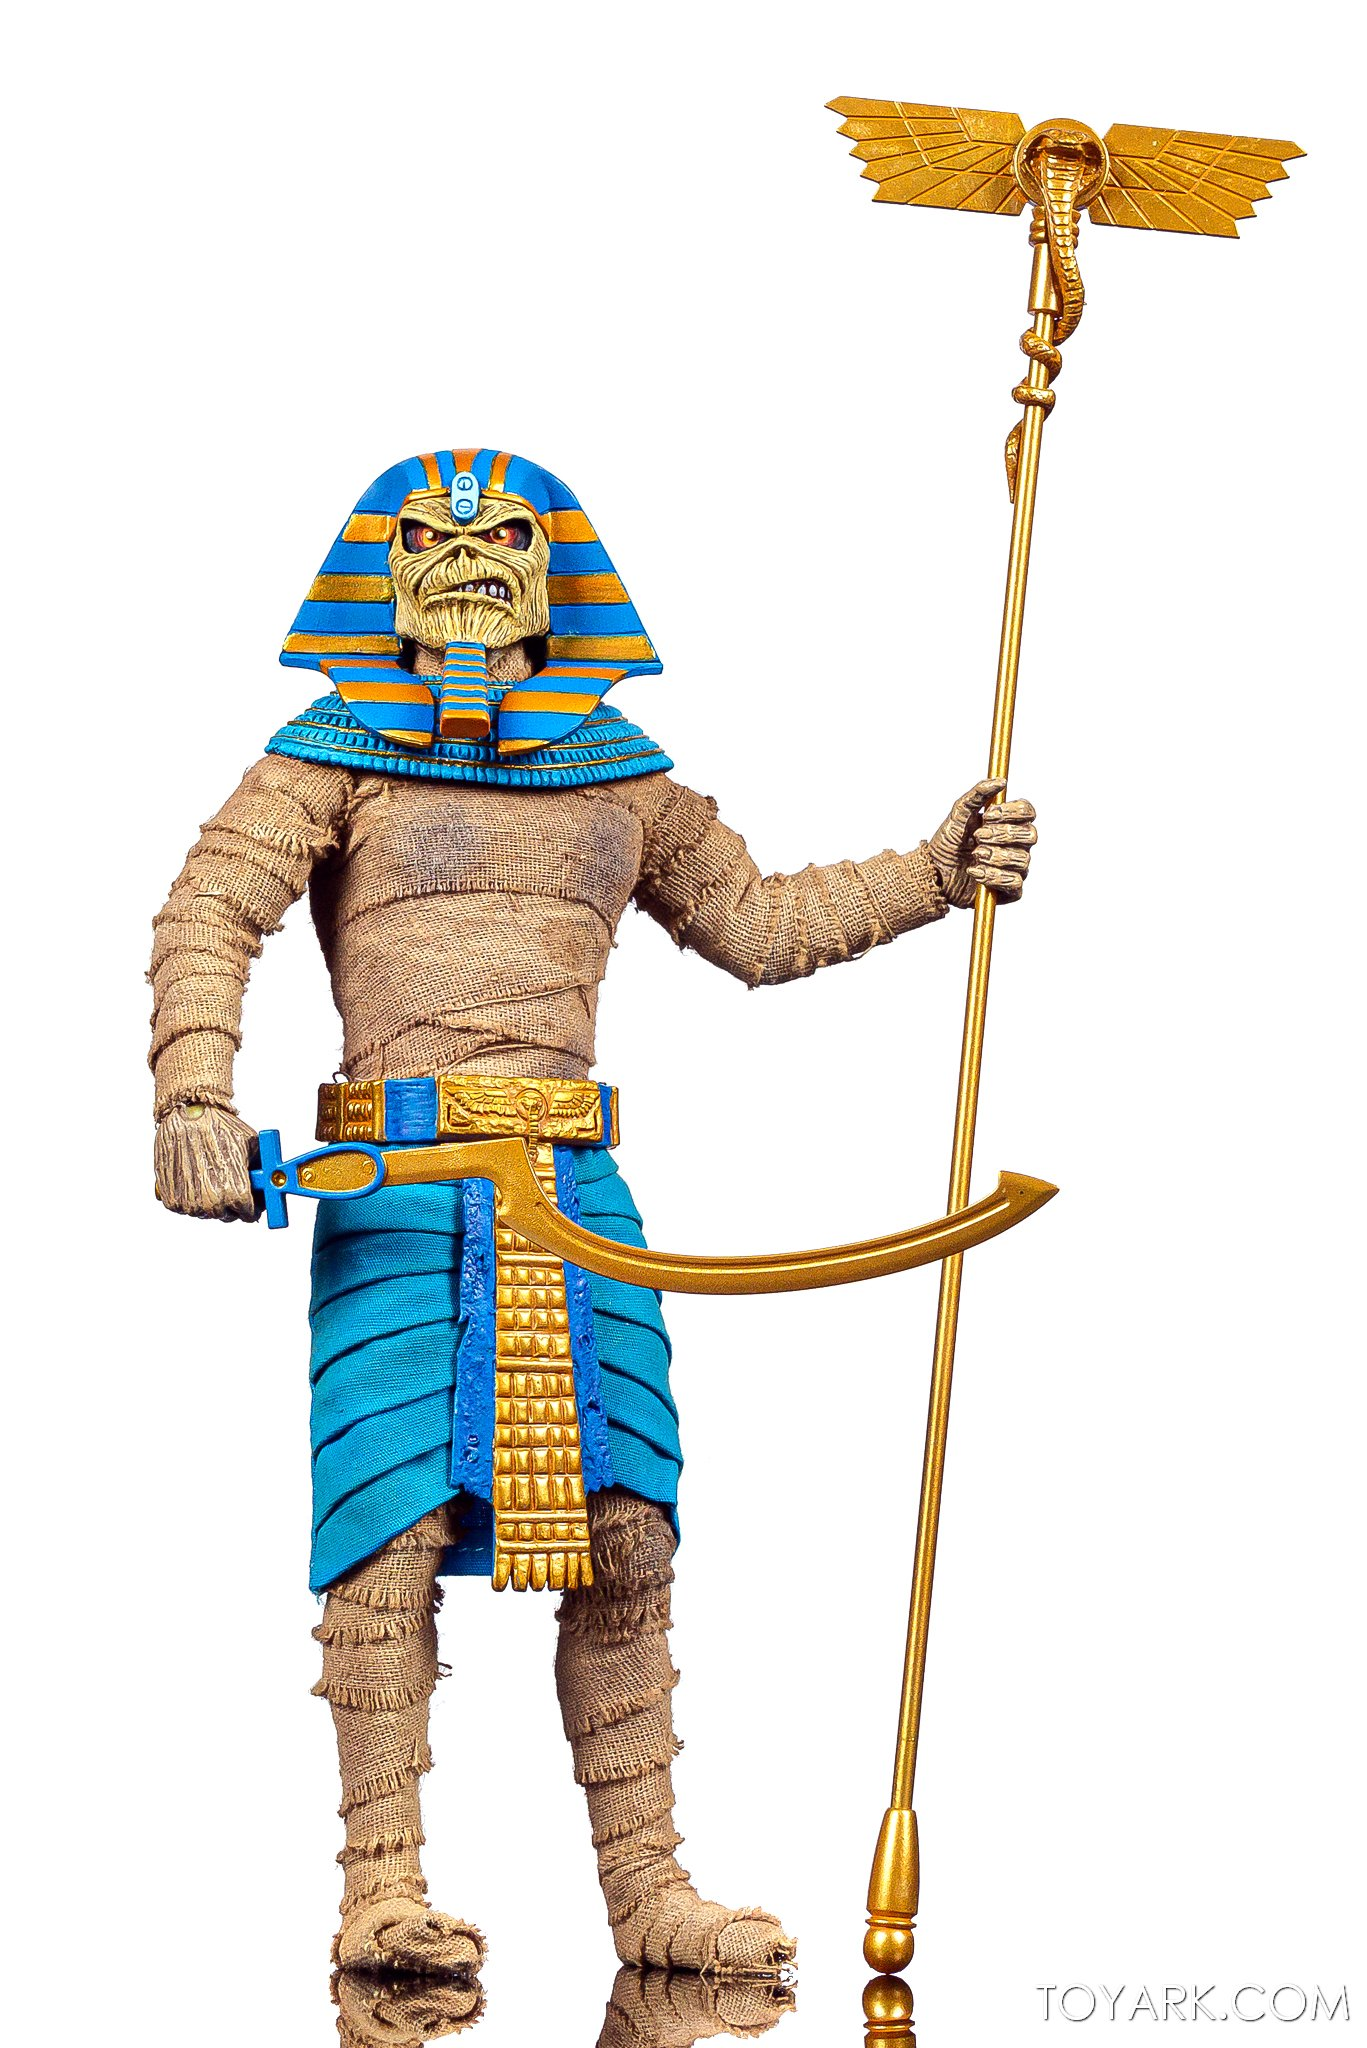 https://news.toyark.com/wp-content/uploads/sites/4/2020/06/NECA-Iron-Maiden-Powerslave-Eddie-004.jpg